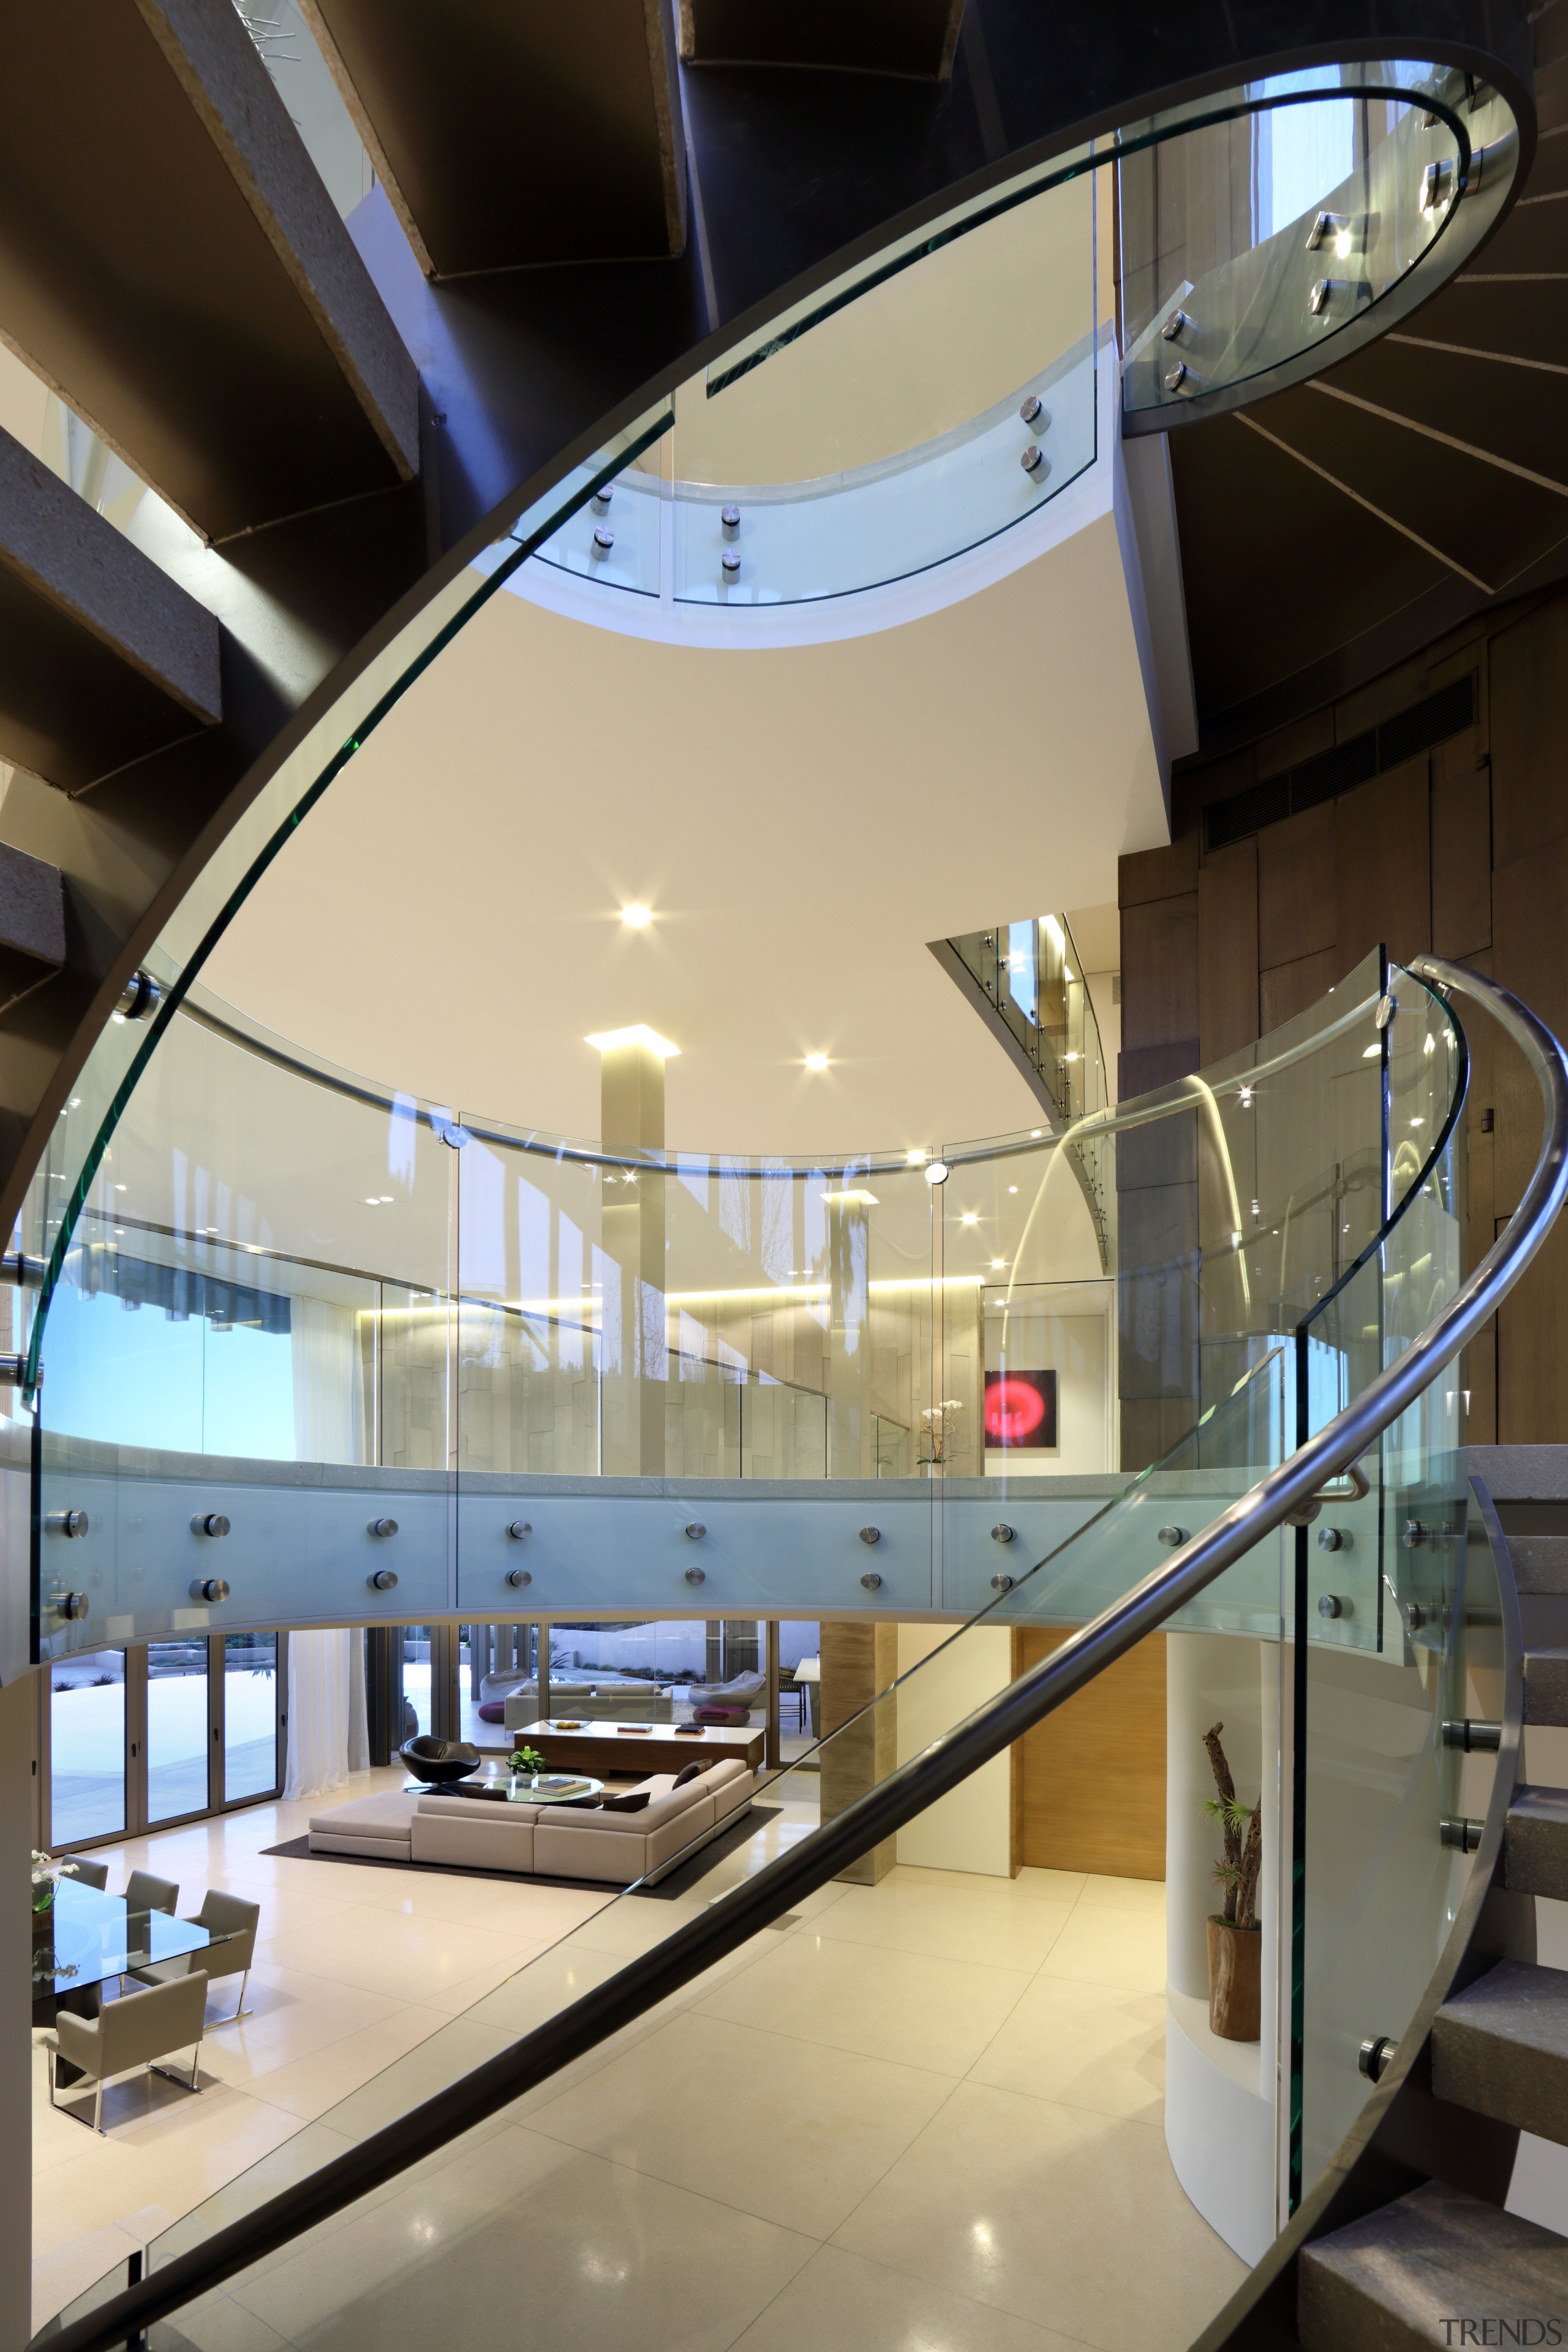 Circulation stair in more ways than one  architecture, ceiling, daylighting, glass, handrail, interior design, stairs, black